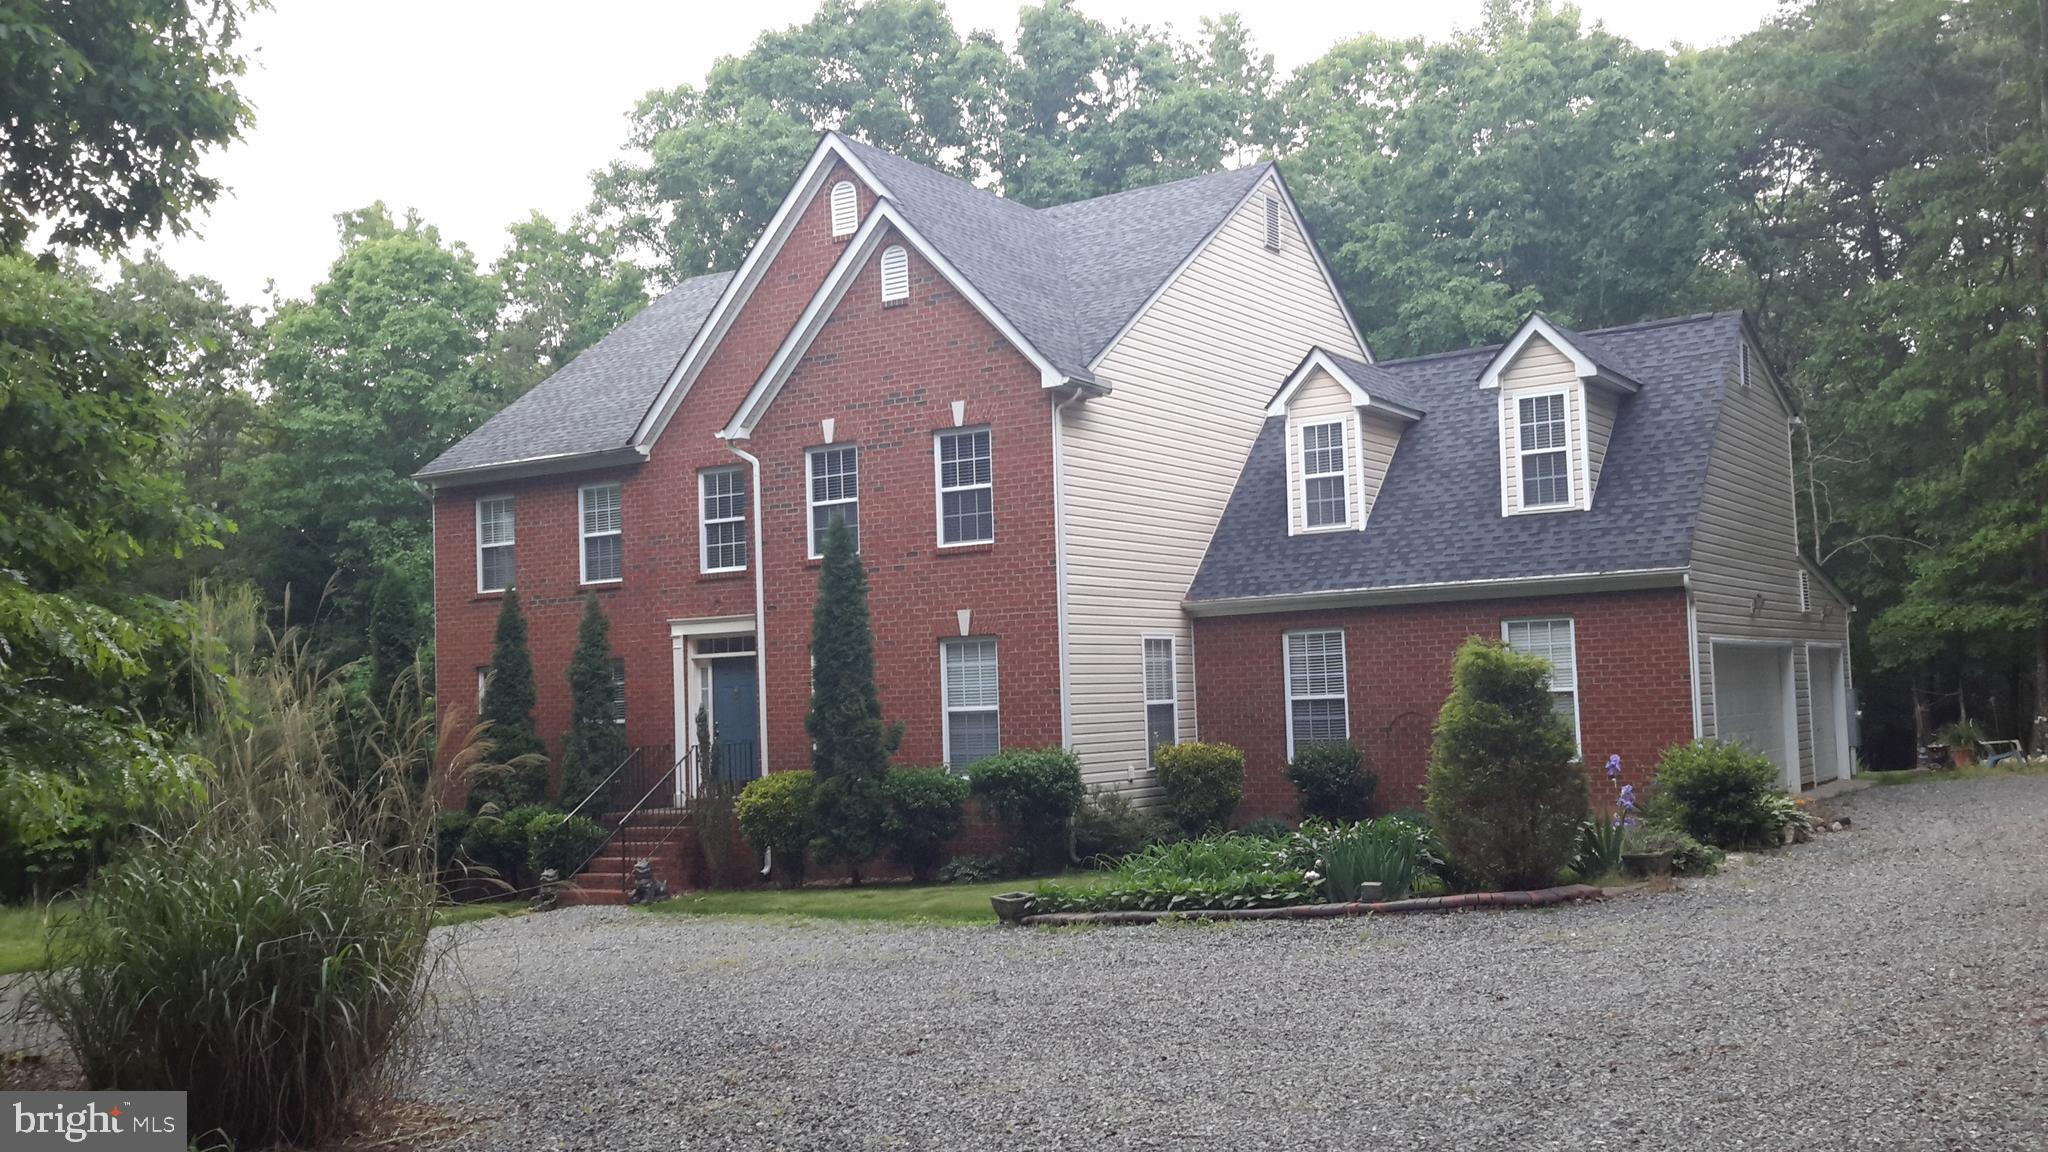 1386 LAKESIDE DRIVE, LOUISA, VA 23093